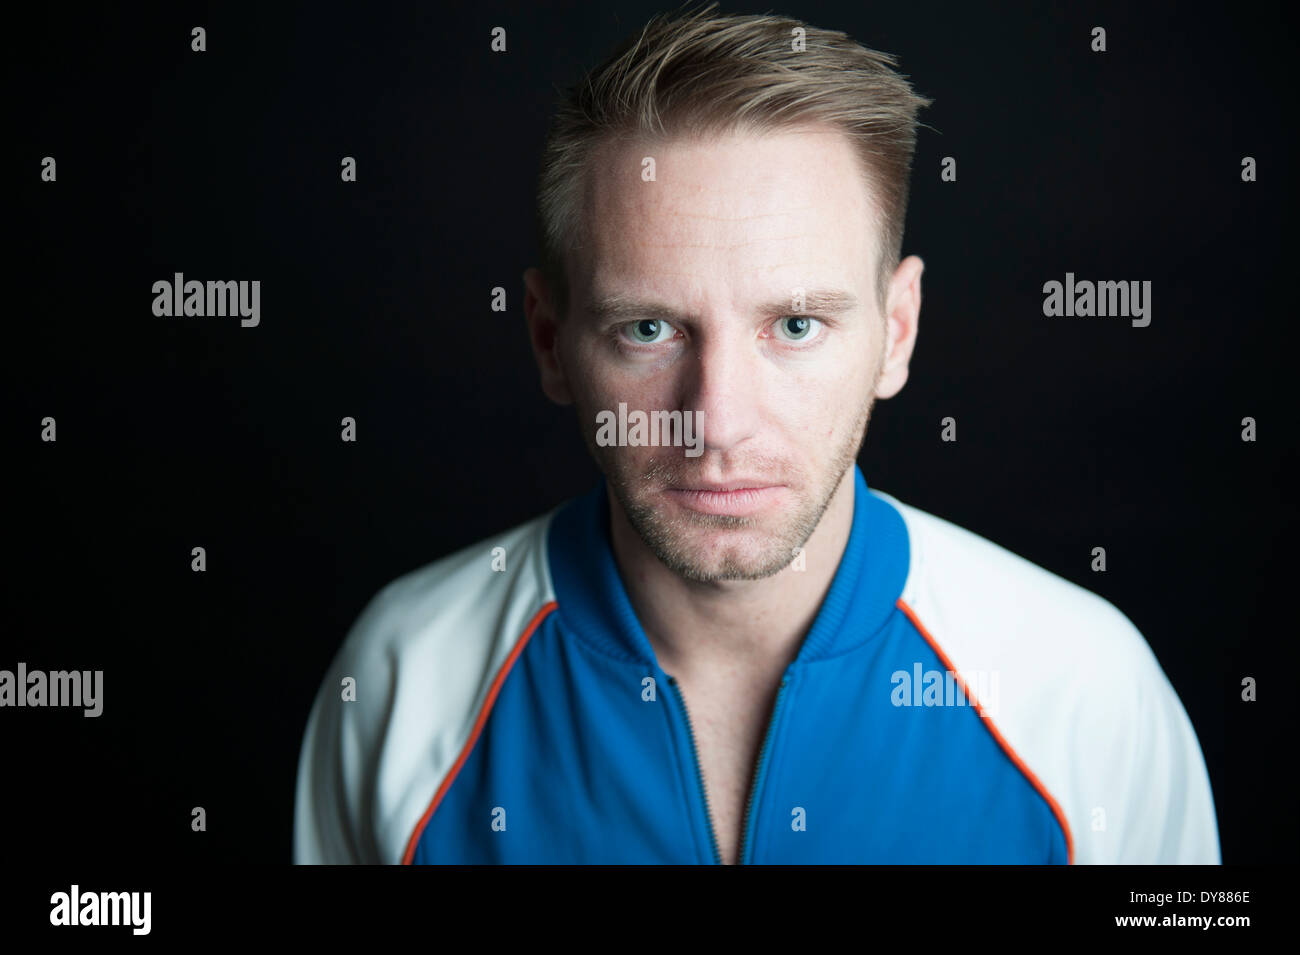 Serious young man, portrait - Stock Image